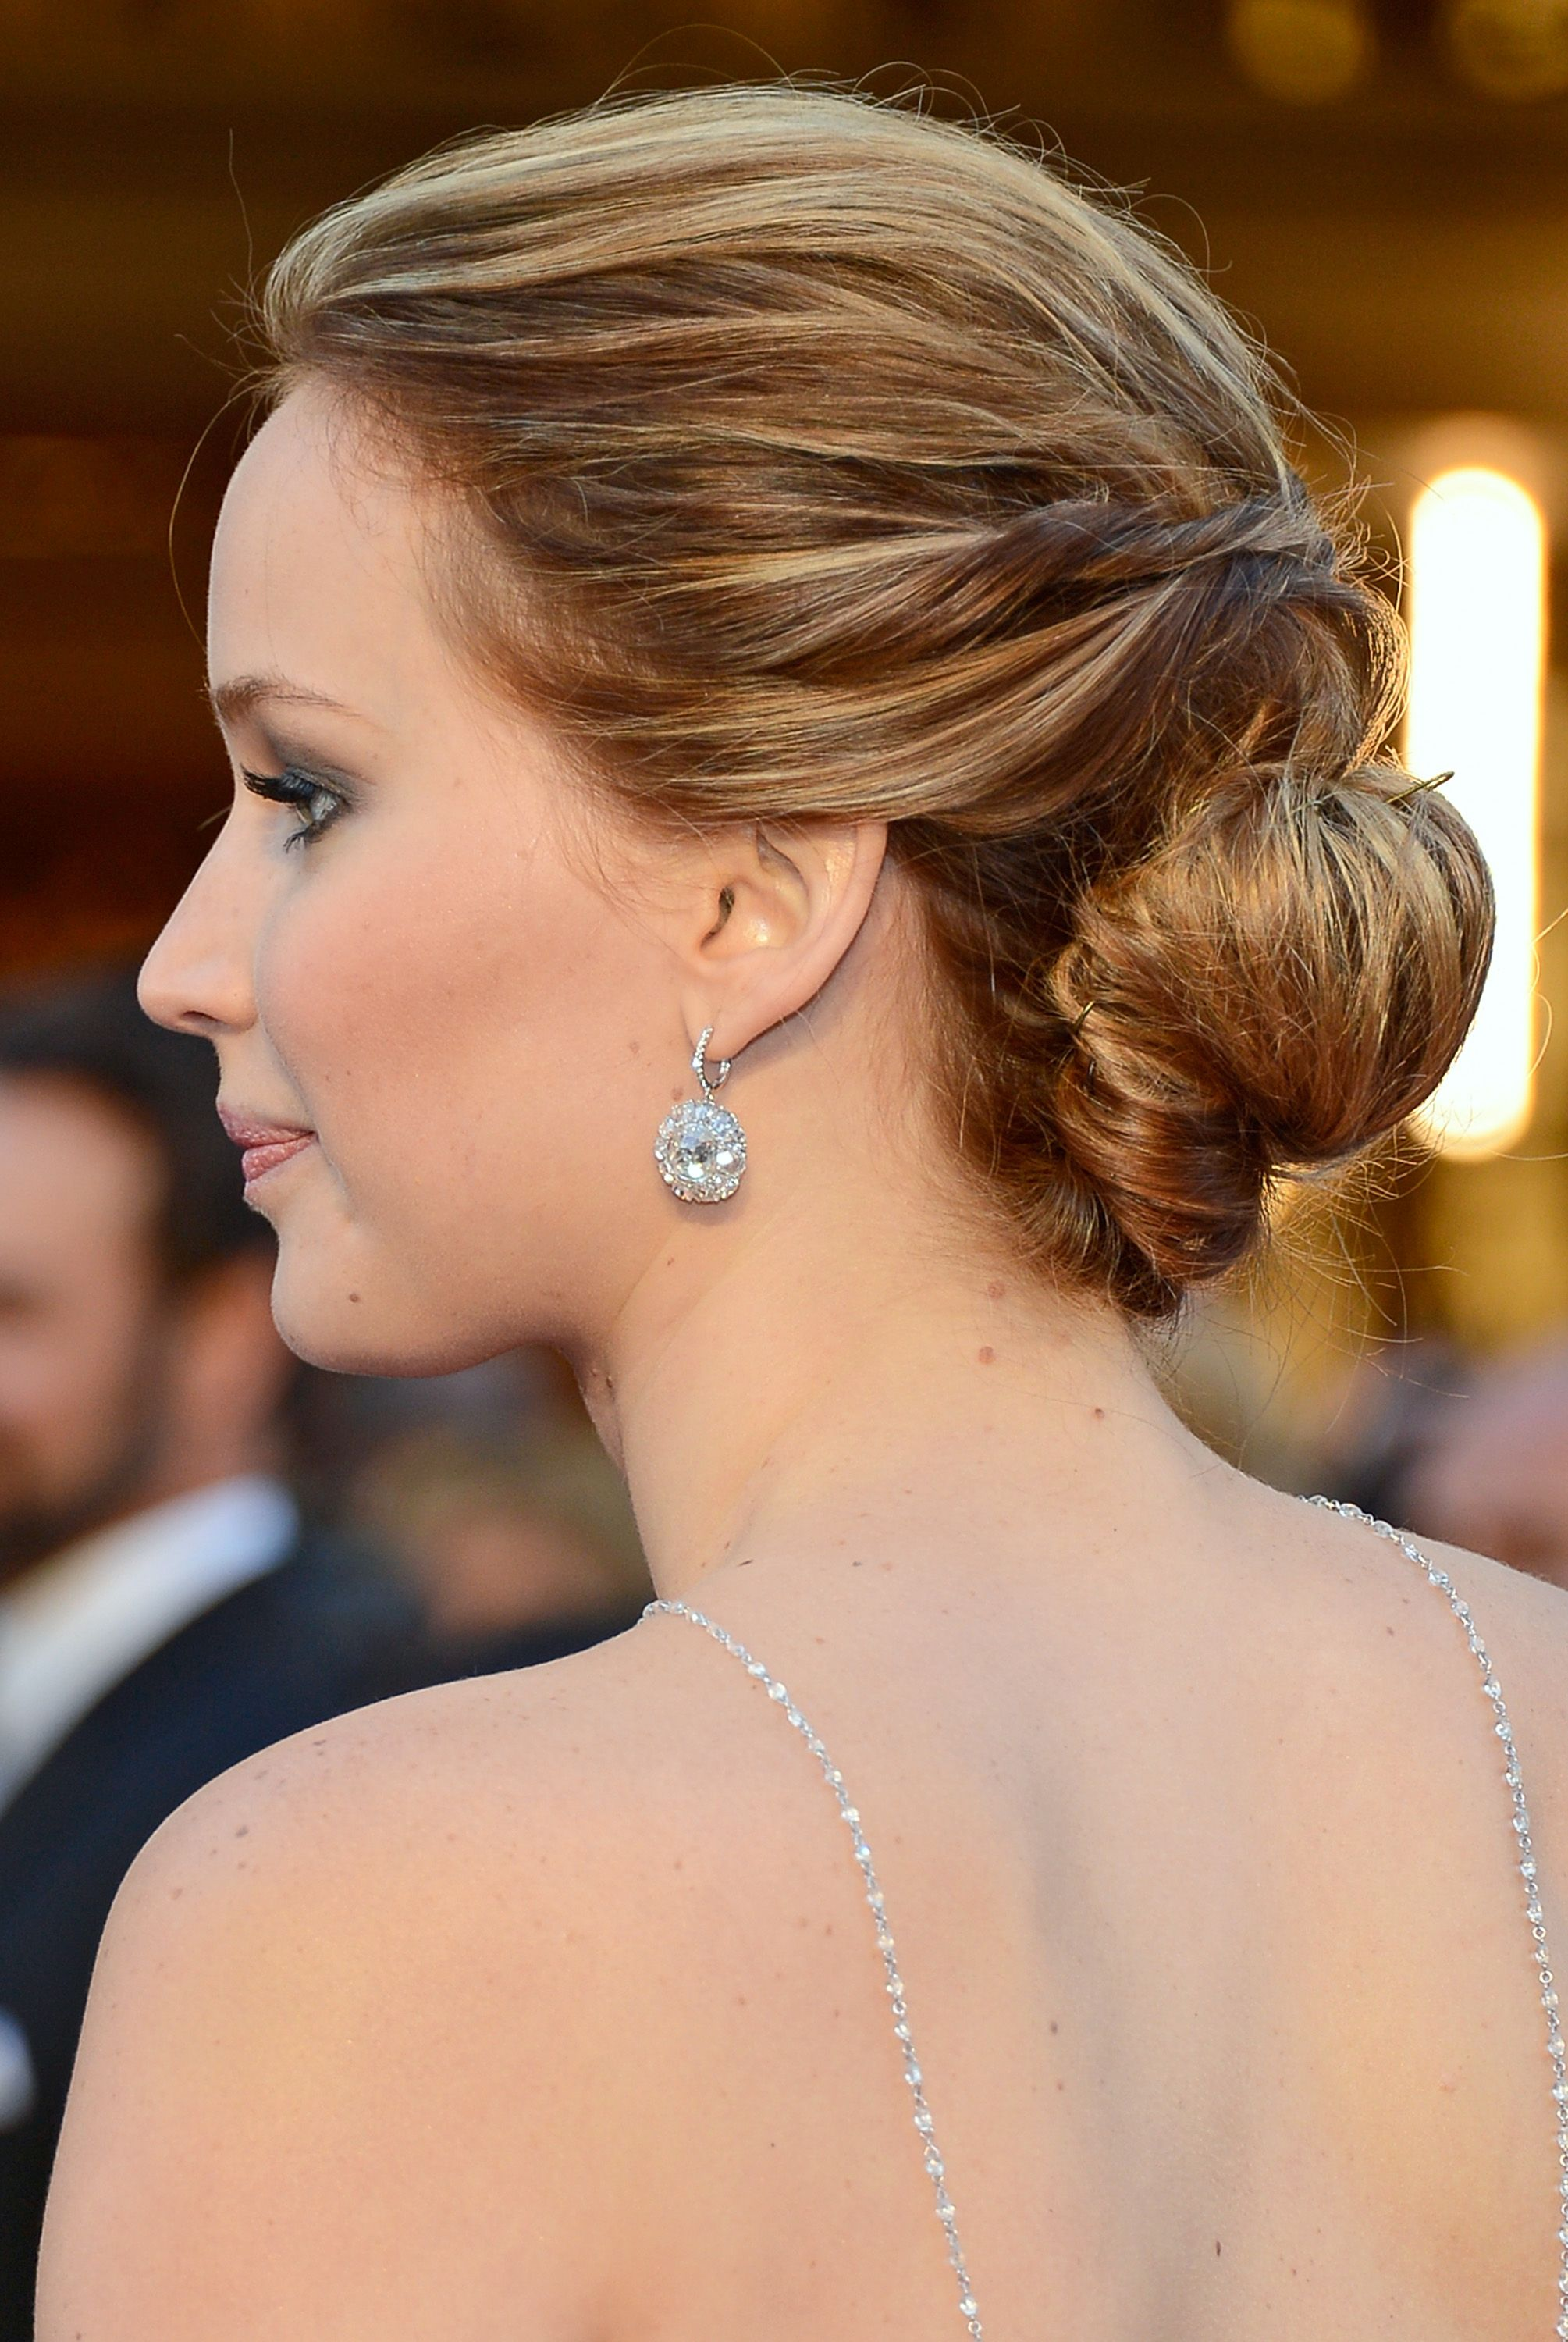 Discussion on this topic: 25 Elegant Ponytail Hairstyles for Special Occasions, 25-elegant-ponytail-hairstyles-for-special-occasions/